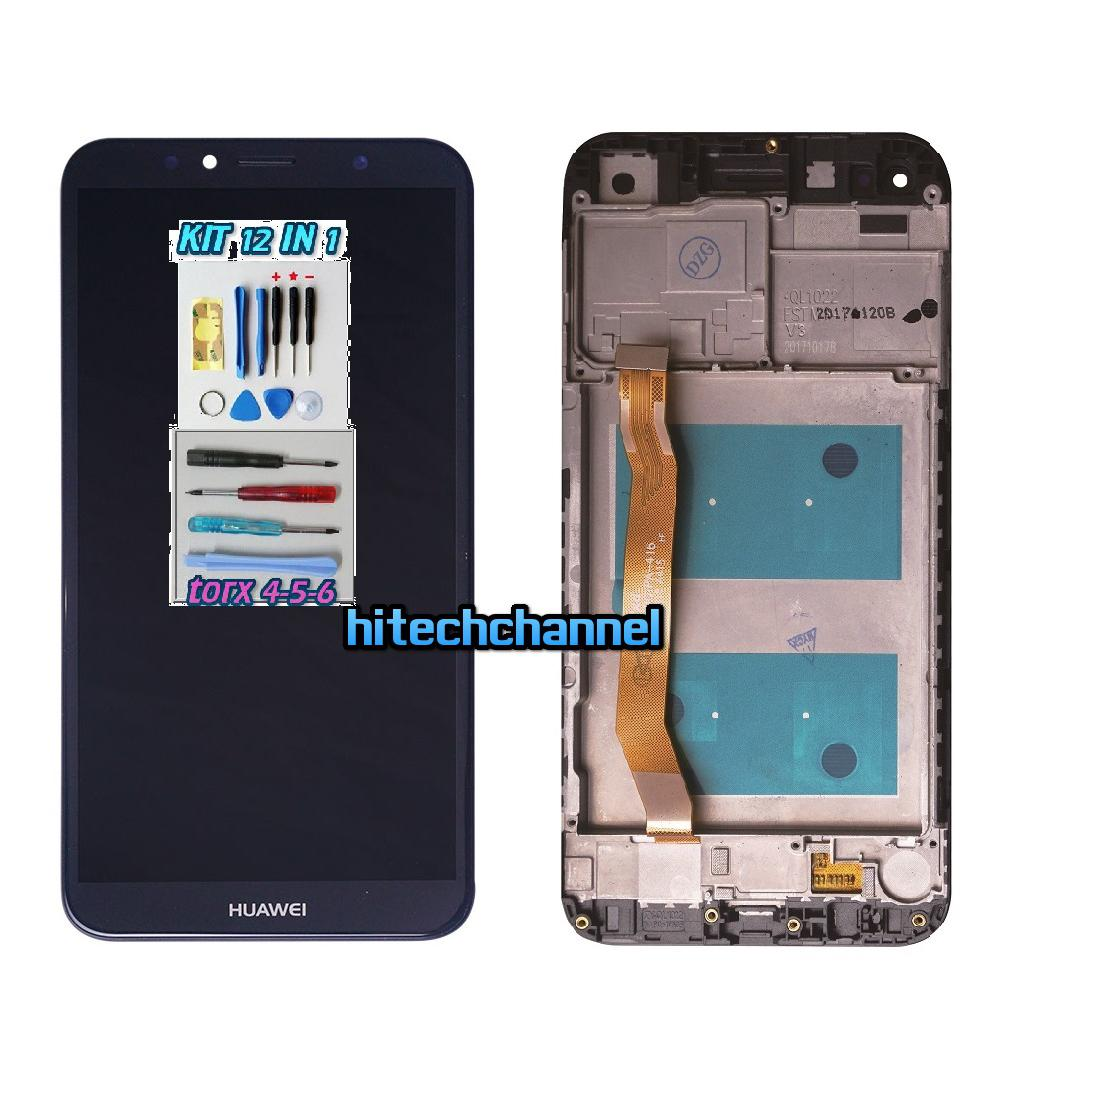 Touch screen display lcd FRAME NERO HUAWEI Y6 2018 AUM-L29 E HONOR 7A kit 9 in 1 e BIADESIVO